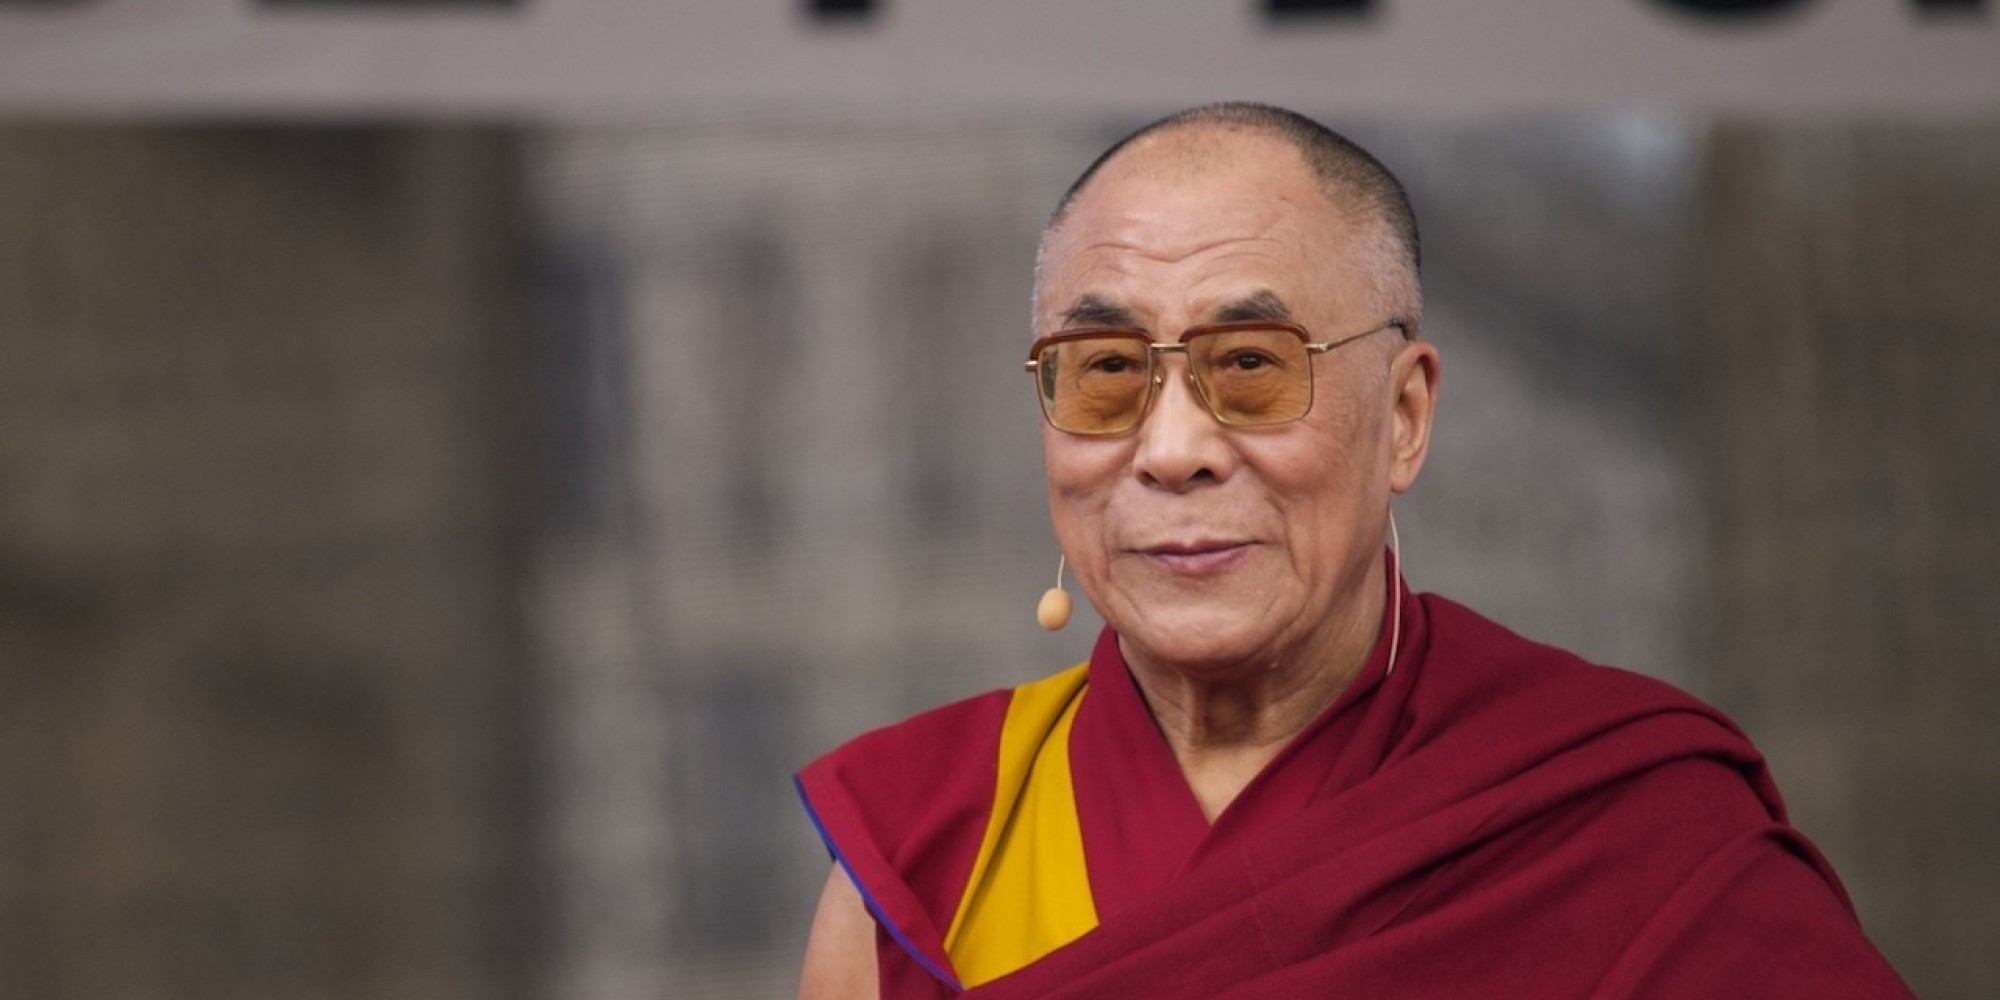 impact of the dalai lama on buddhism The dalai lama has made many contributions to buddhism and has changed it   tenzin gyatso has had a greater effect on buddhism and the.